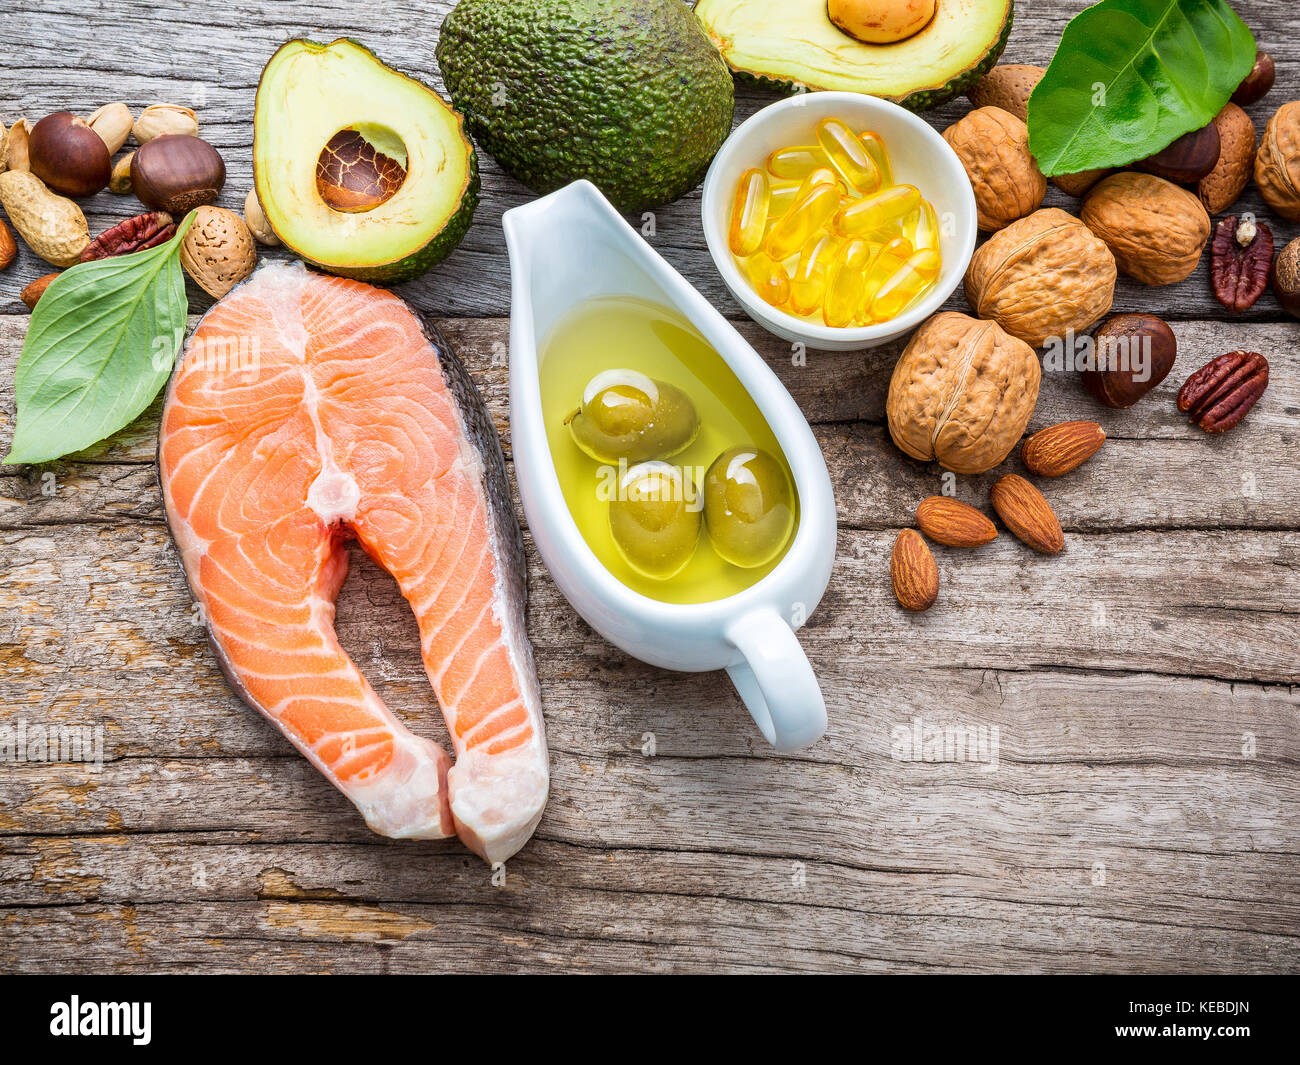 Selection food sources of omega 3 and unsaturated fats. Superfood high vitamin e and dietary fiber for healthy food. - Stock Image